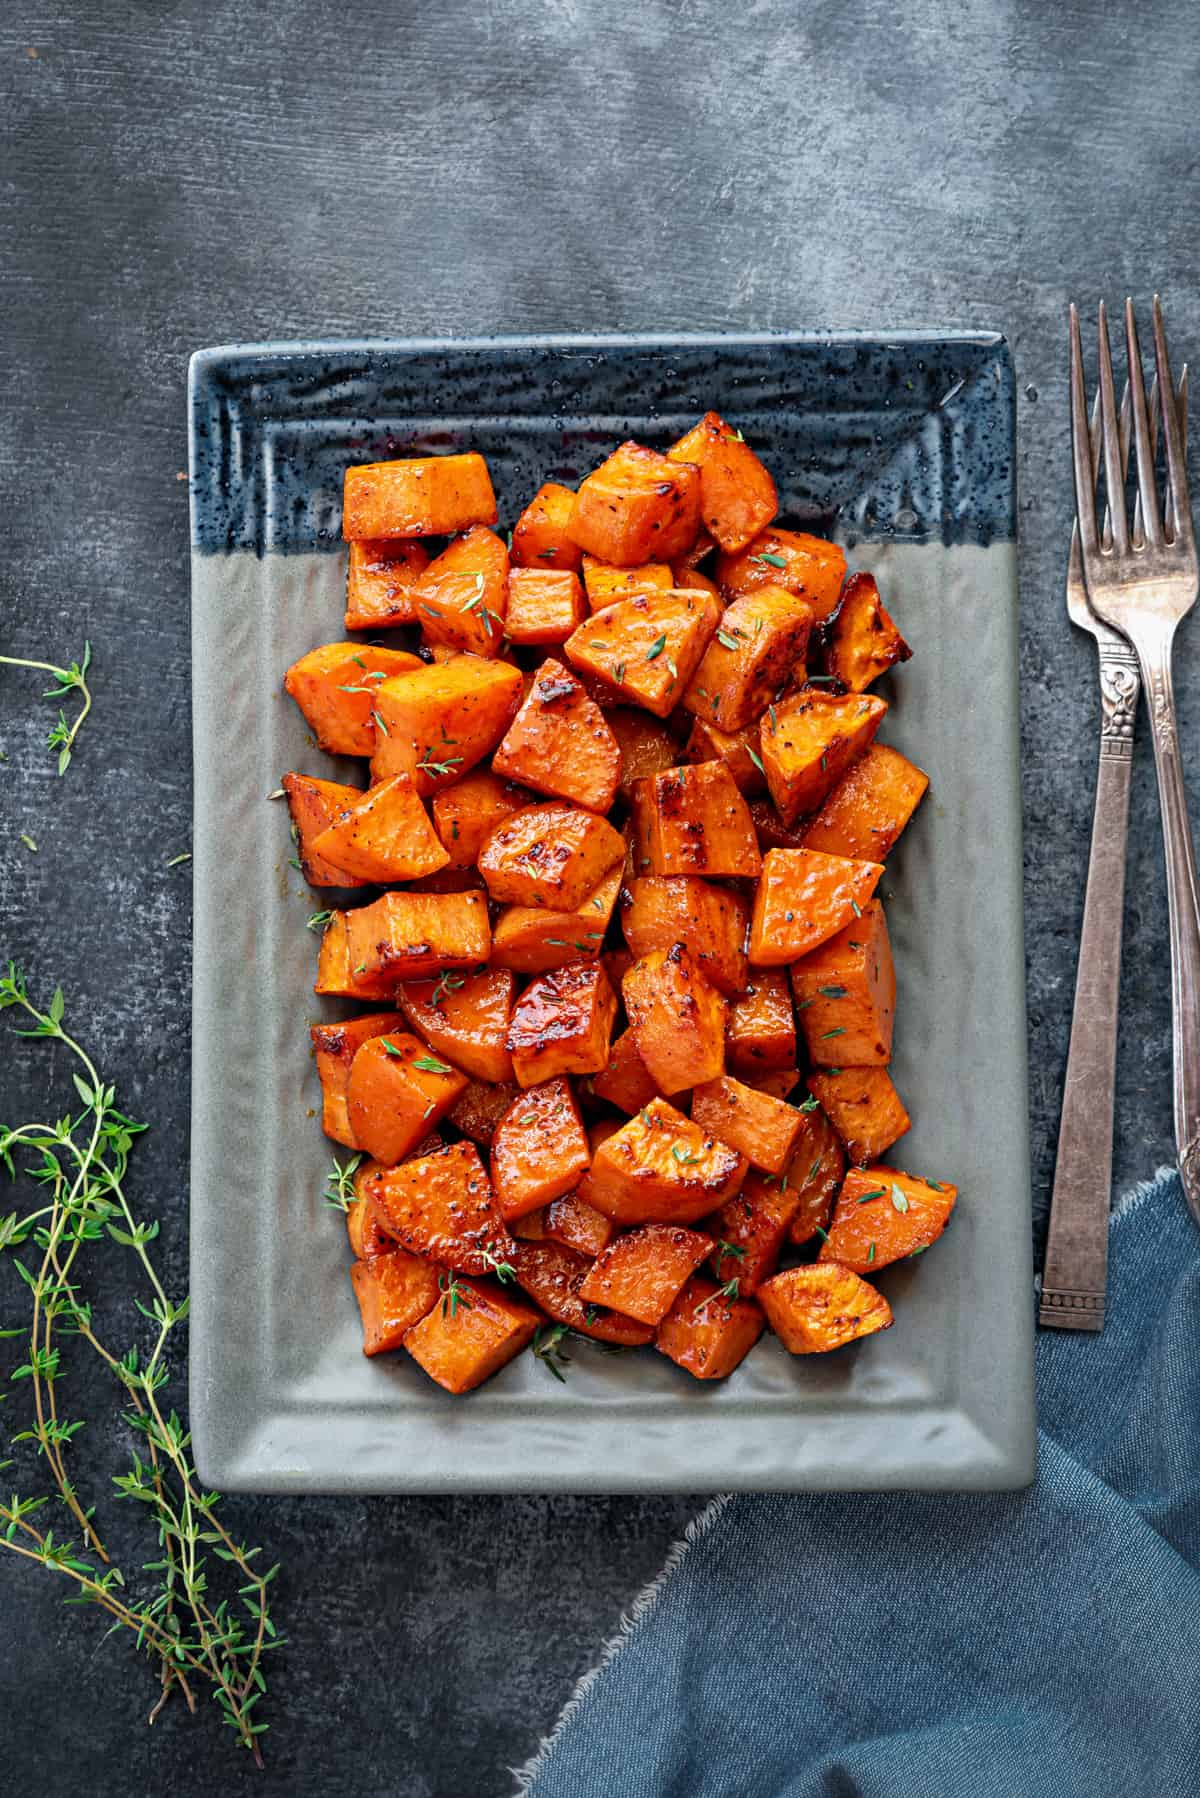 A large plate of roasted sweet potatoes, shot from above, with two forks and sprigs of thyme on the table next to the plate.